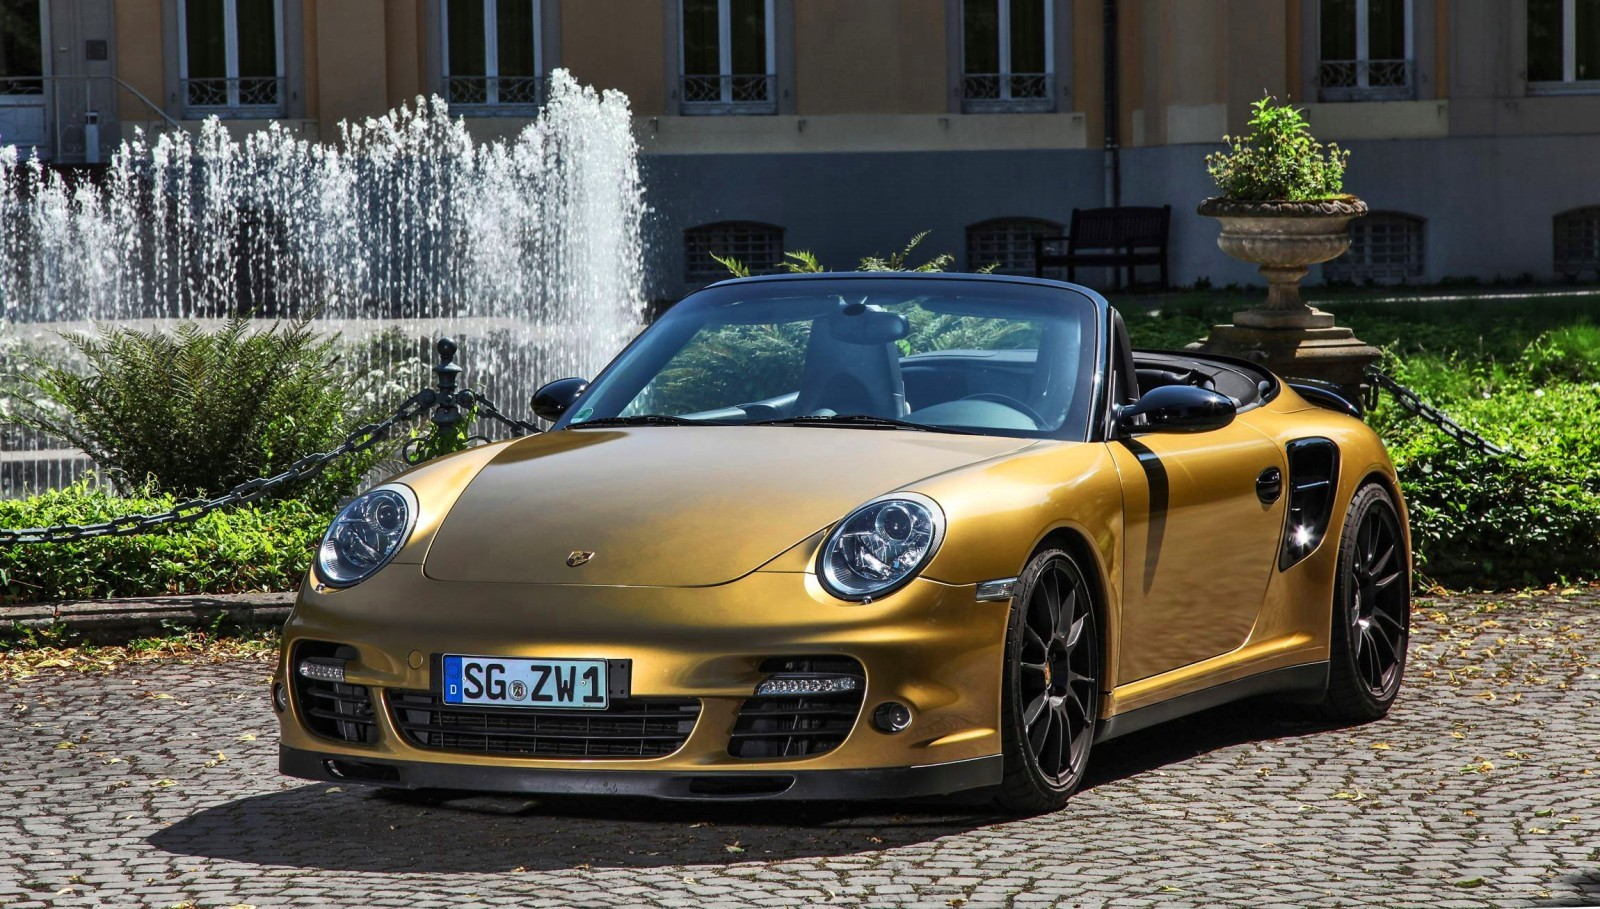 black gold 840hp 226mph porsche 911 turbo cabrio by wimmer rst. Black Bedroom Furniture Sets. Home Design Ideas